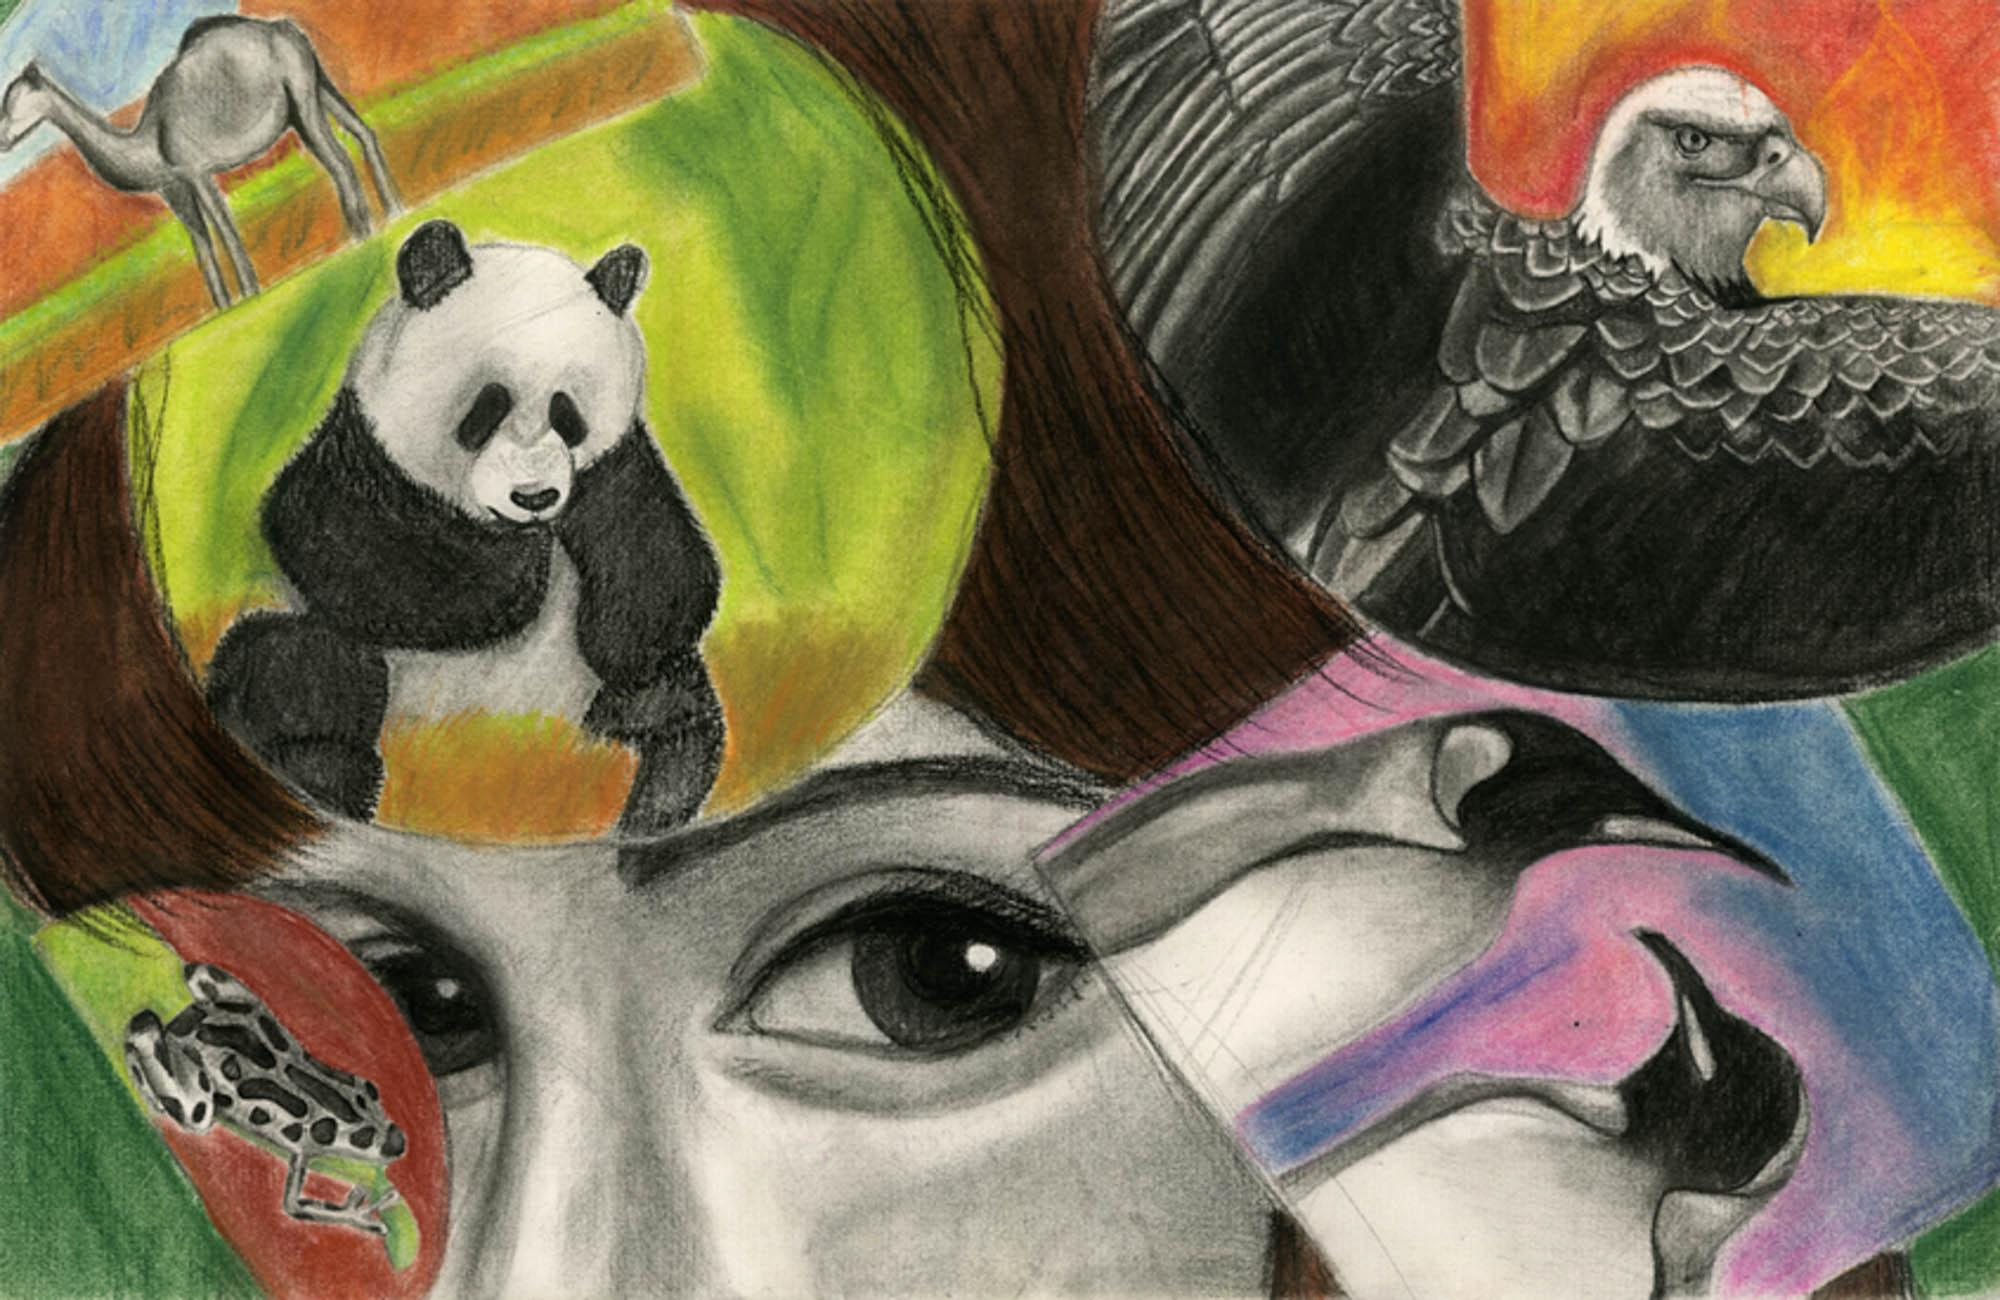 Love, Jennifer Zhuge, age 13 Palo Alto, California Triangle Art Studio Teacher: Paul Chen, 2013 River of Words Art Grand Prize Winner, Category III